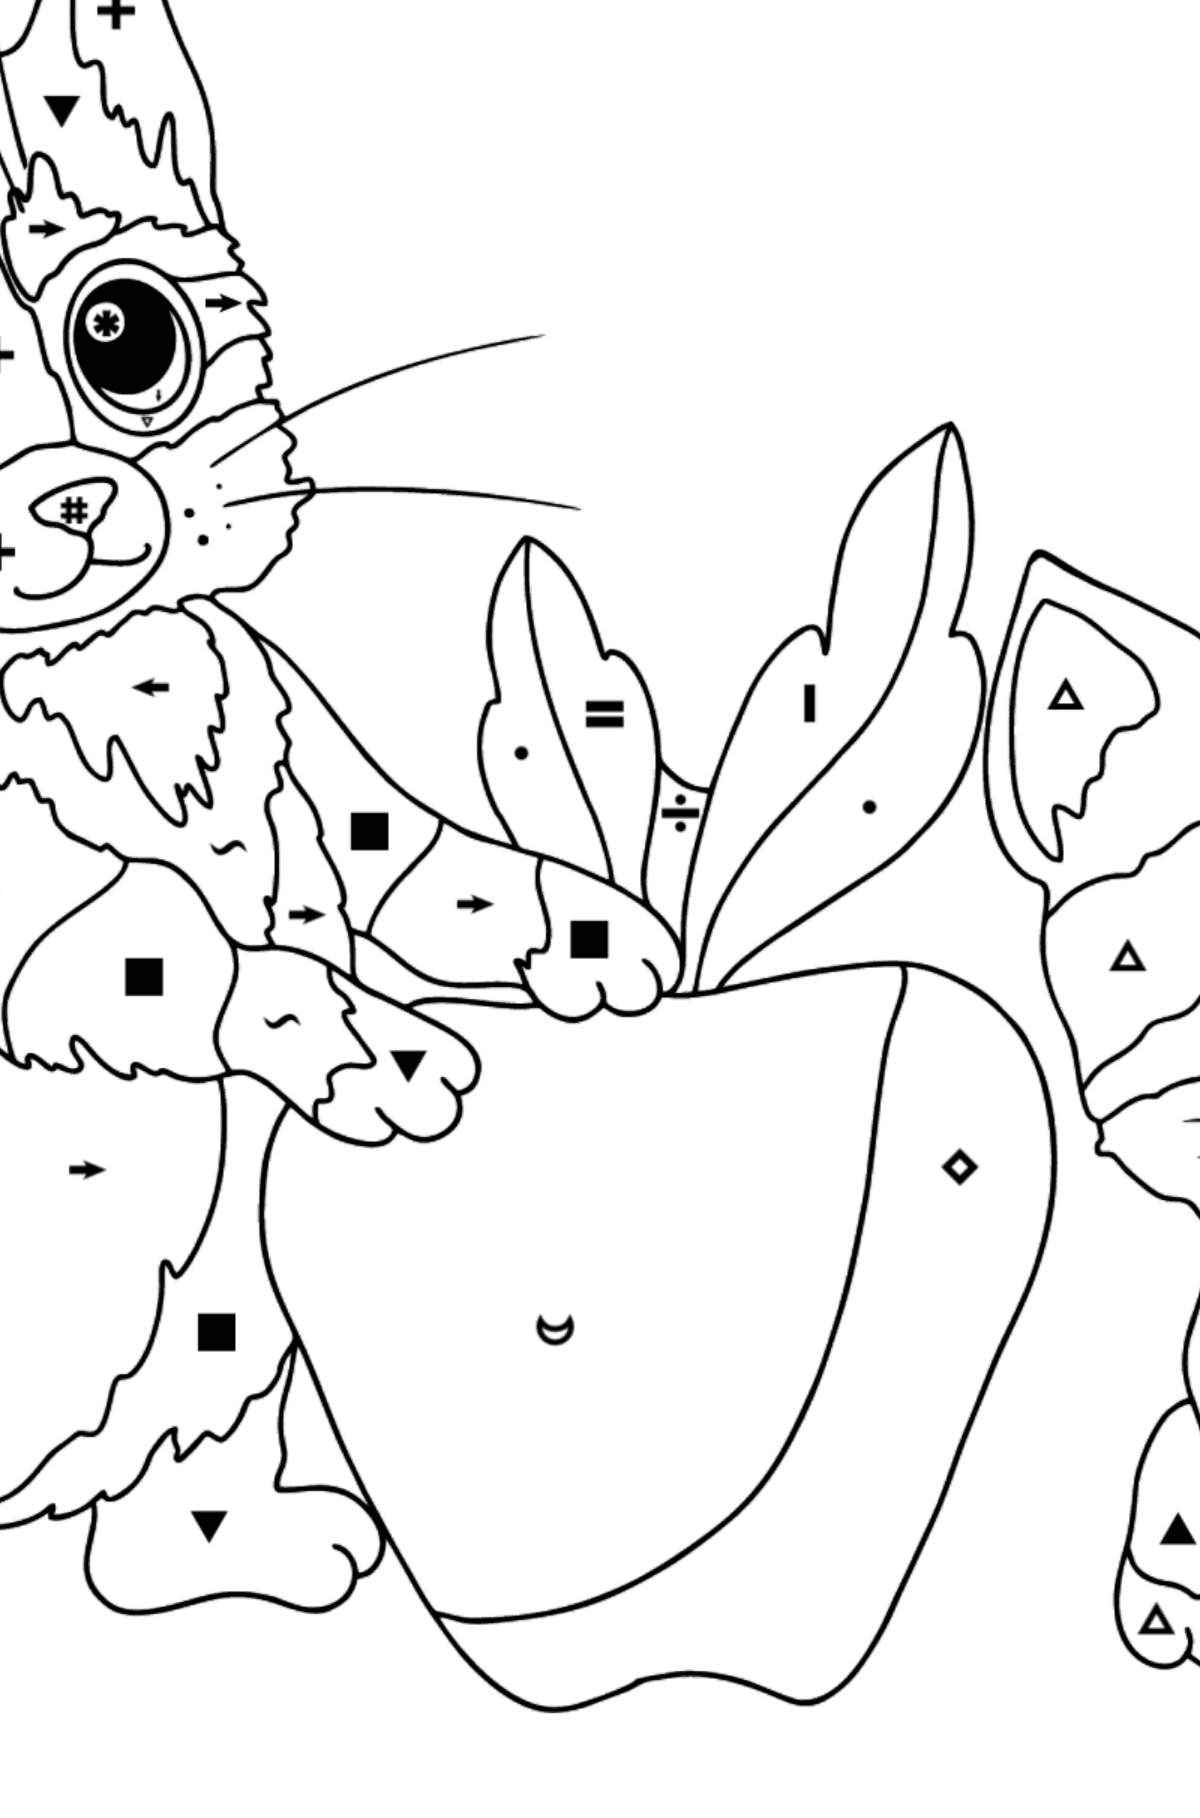 Coloring Page - Kittens are Having Fun with a Red Apple - Coloring by Symbols for Kids